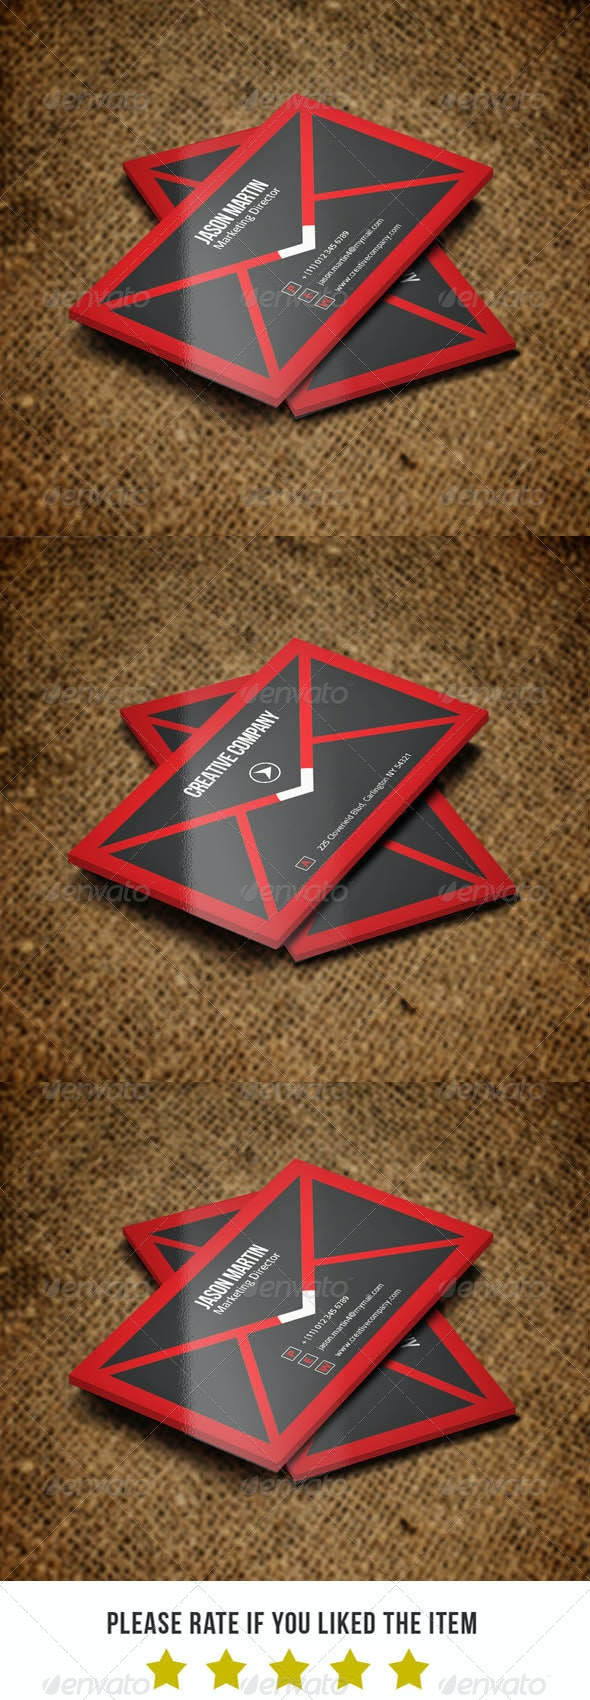 Marketing Business card v37 - Real Objects Business Cards